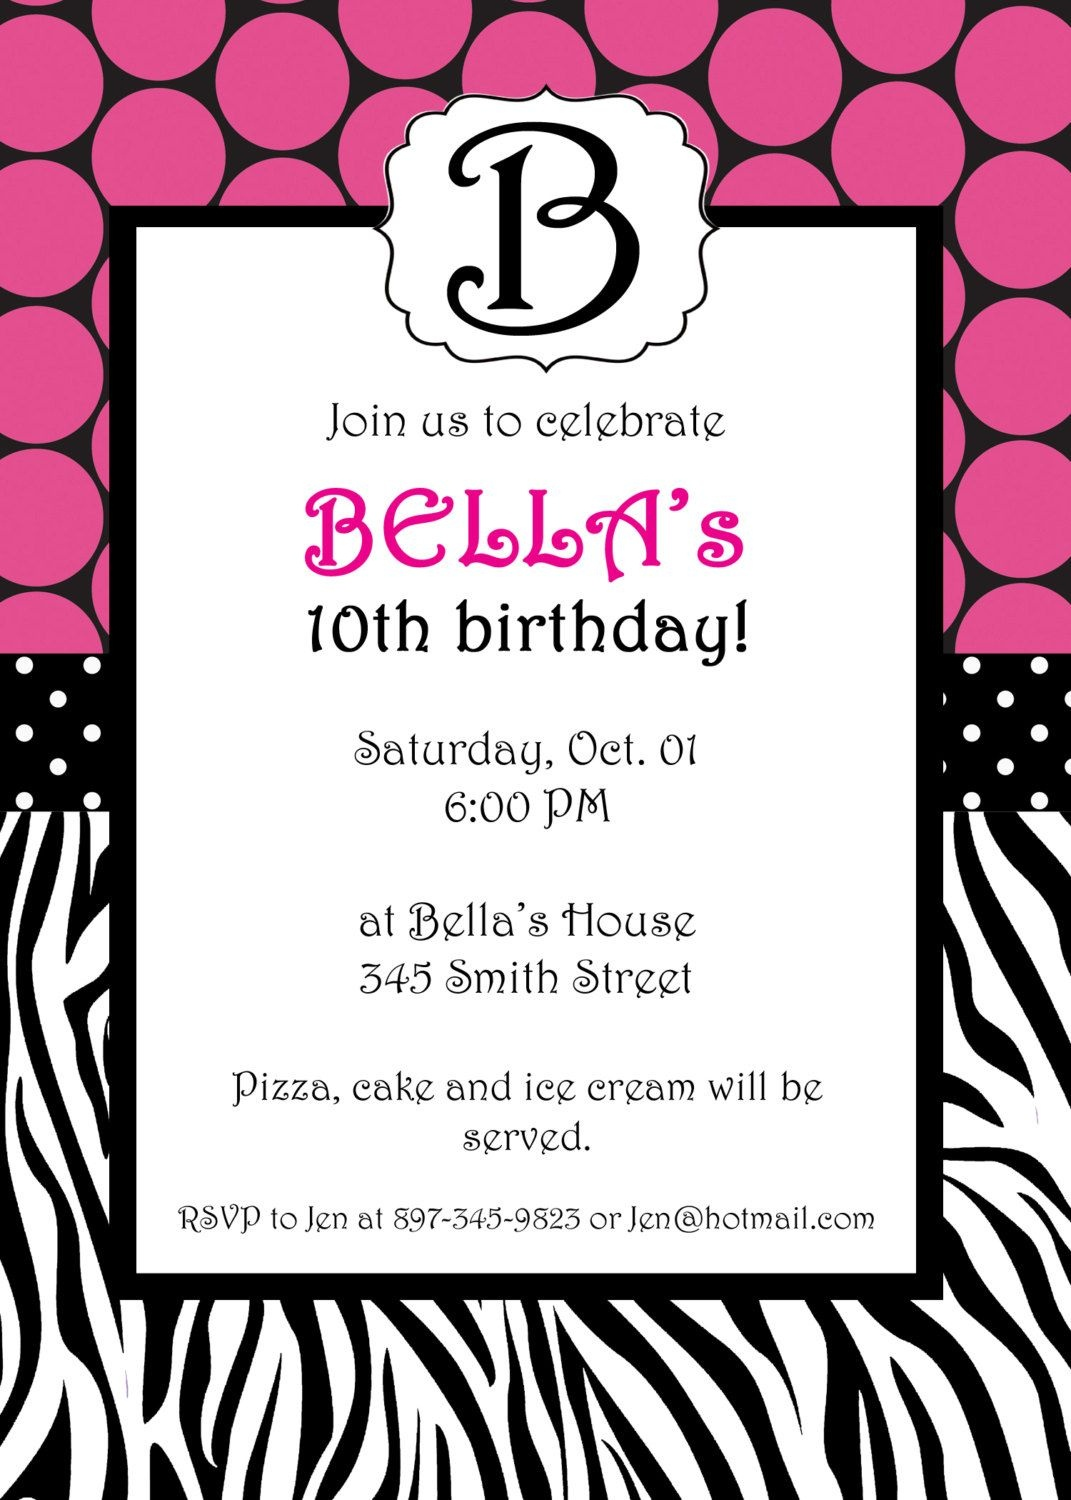 Free Printable Zebra Print Invitations Baby Shower | Emma | Free - Zebra Invitations Printable Free